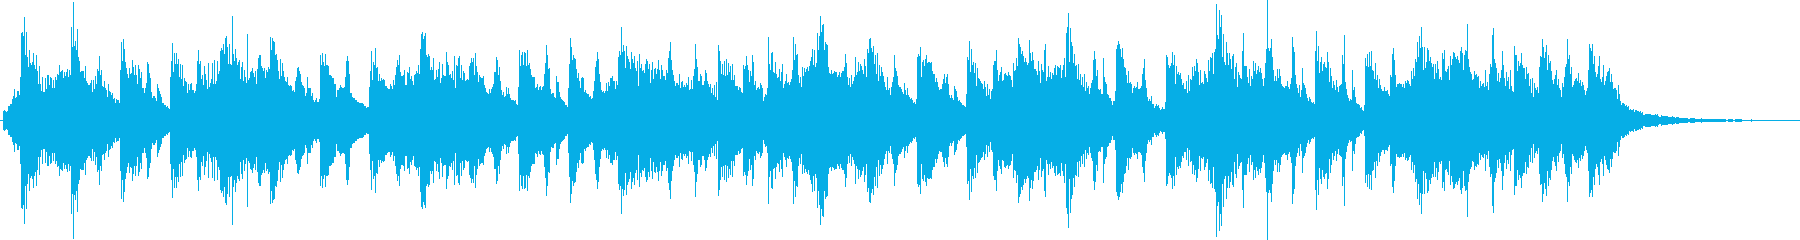 Colorful and cute jingle for children's reproduced waveform